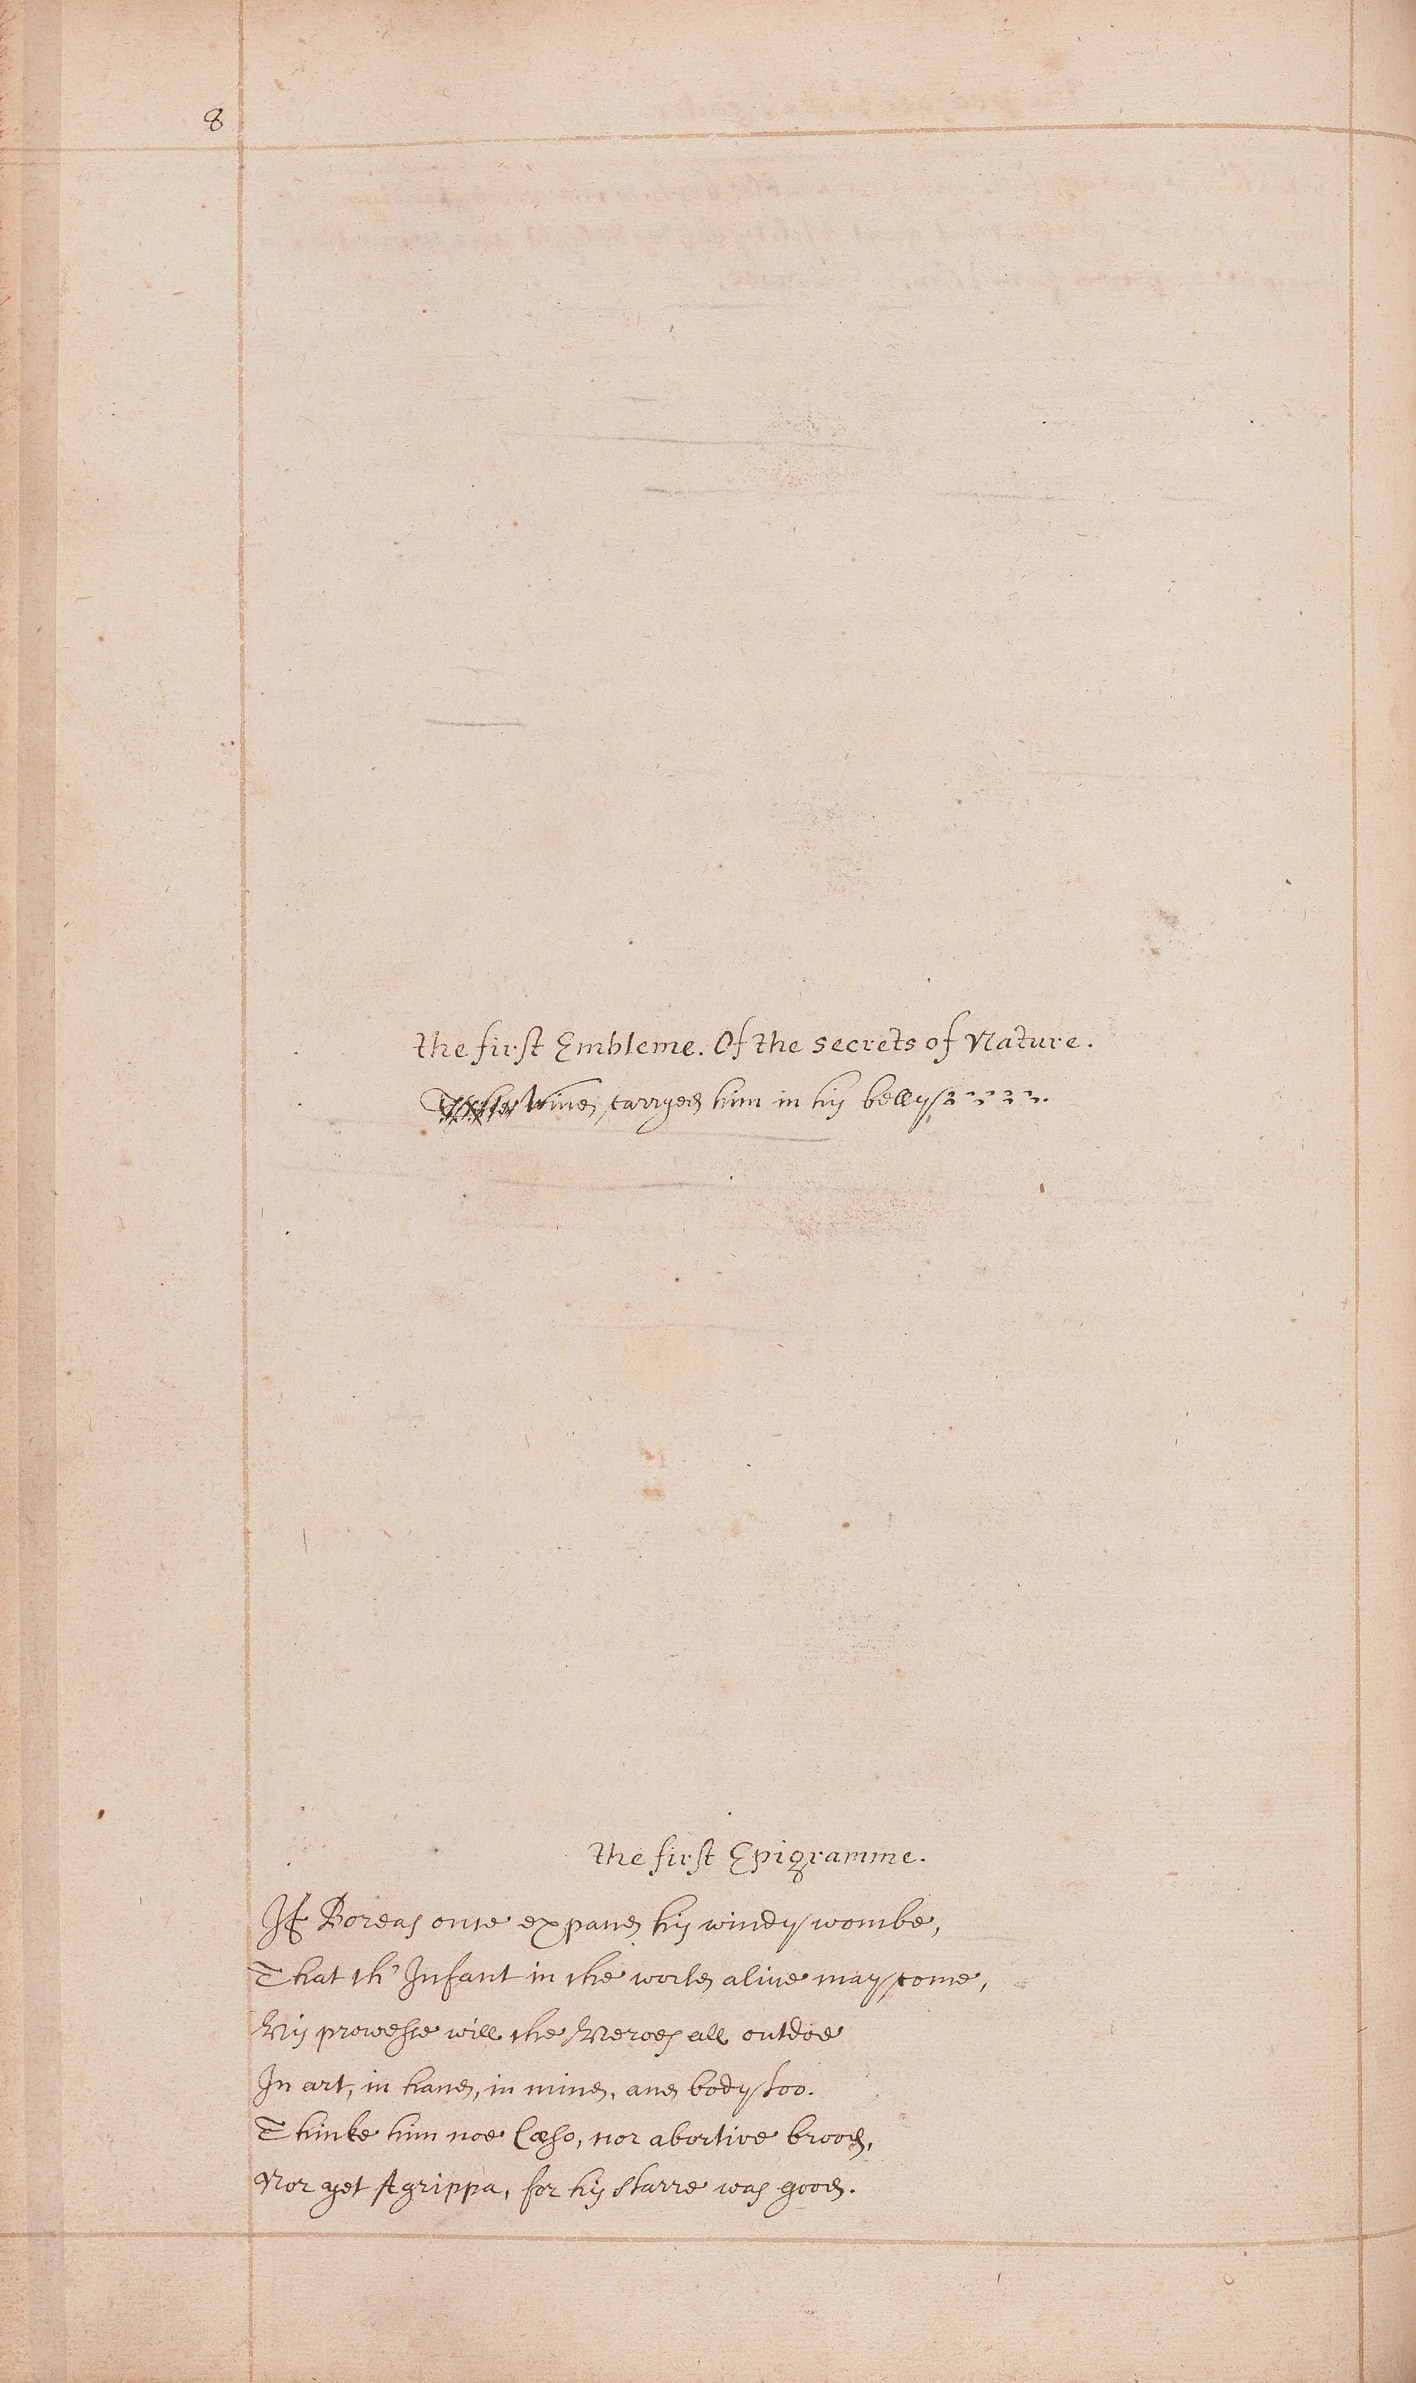 An unillustrated manuscript page from an English translation of Maier's text.